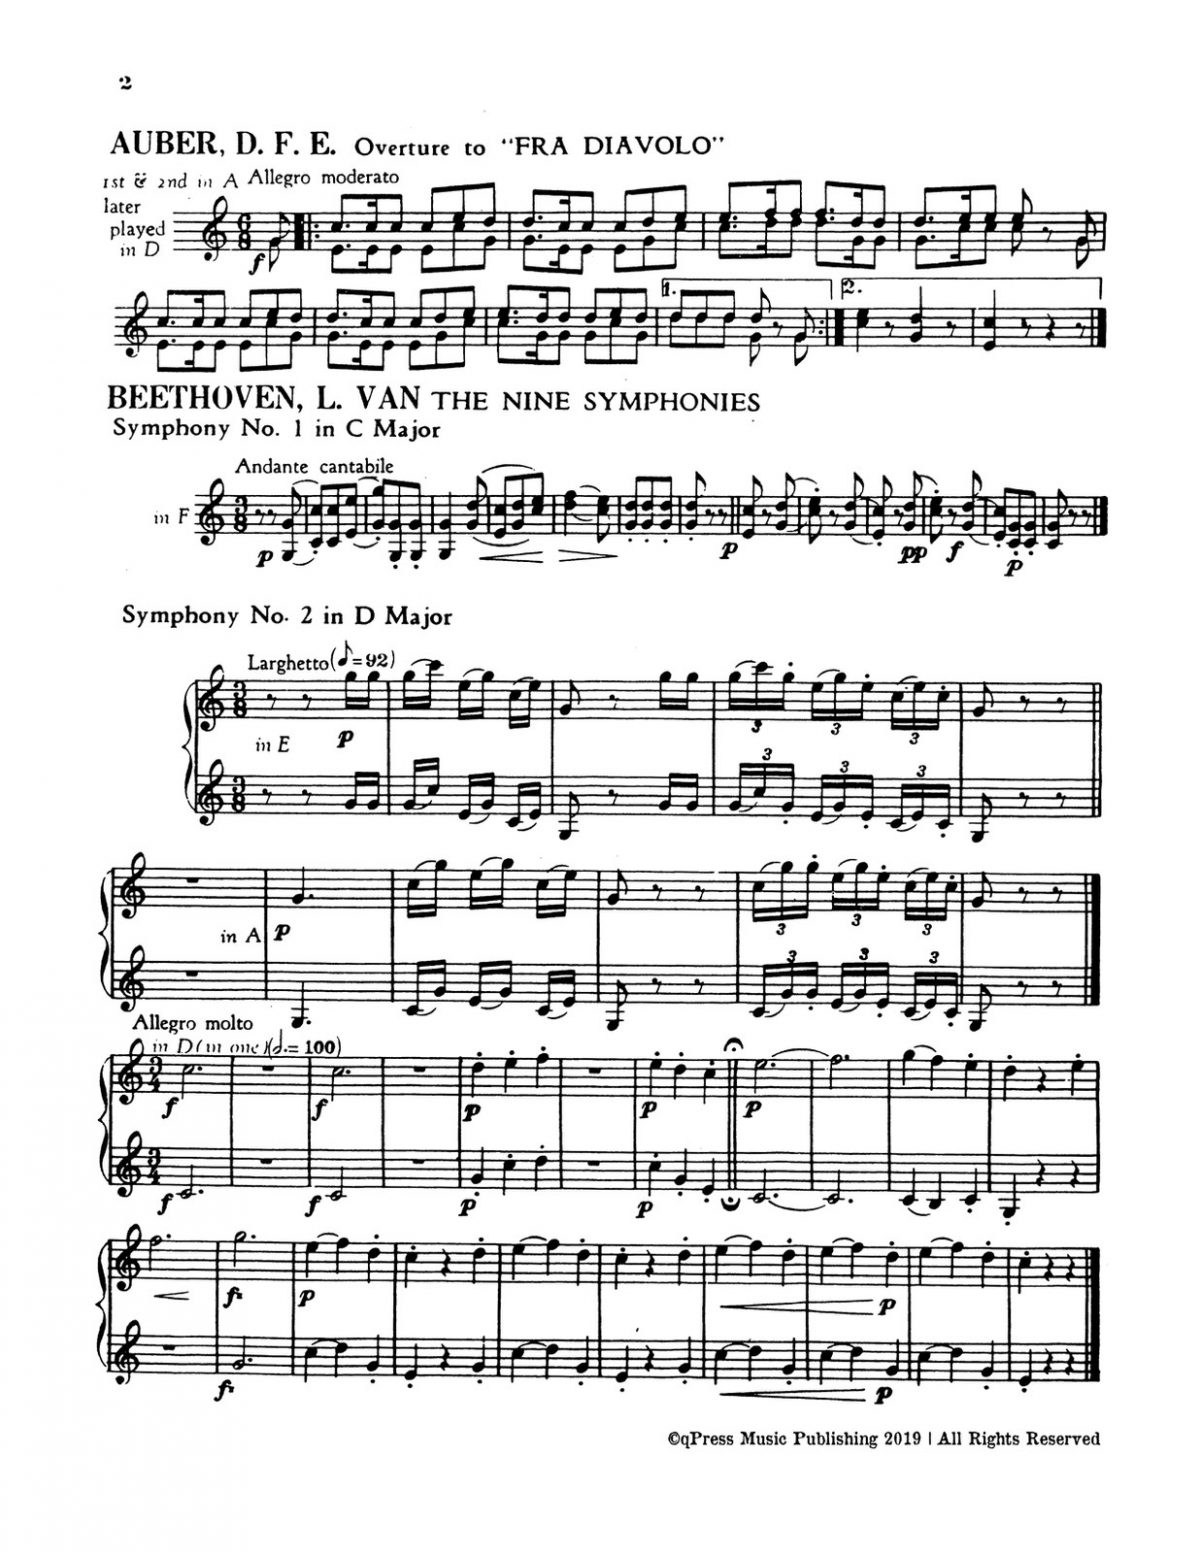 Pottag, French Horn Passages Vol 1-p04